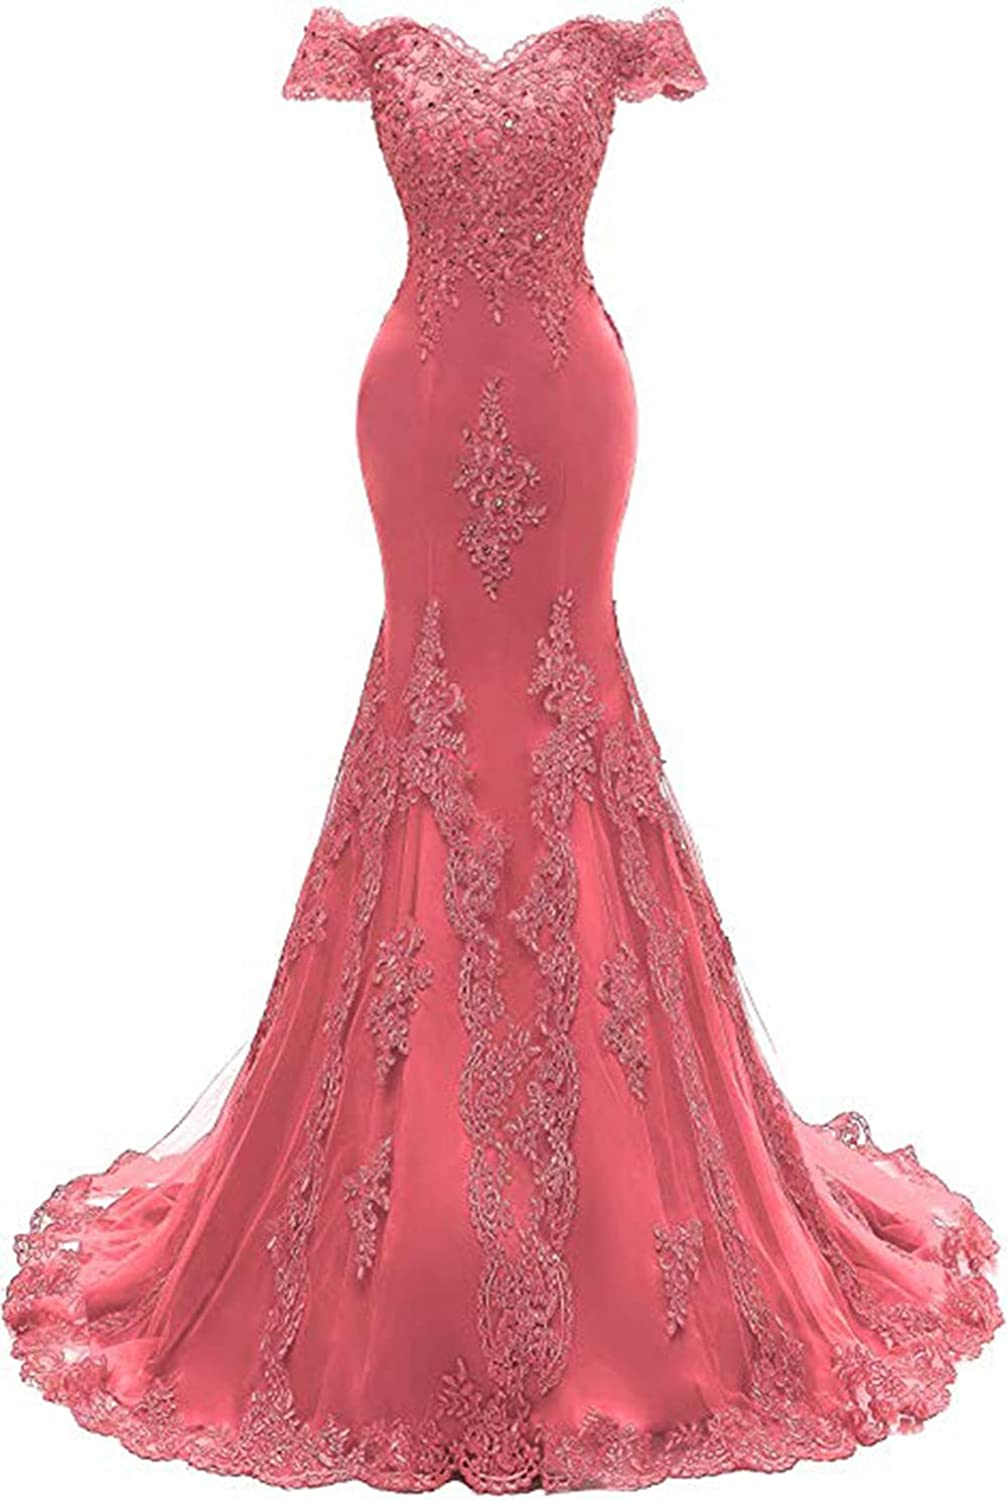 Lily Wedding Womens Off Shoulder Lace Mermaid Prom Wedding Dresses 2018 Long Formal Evening Ball Gowns D115